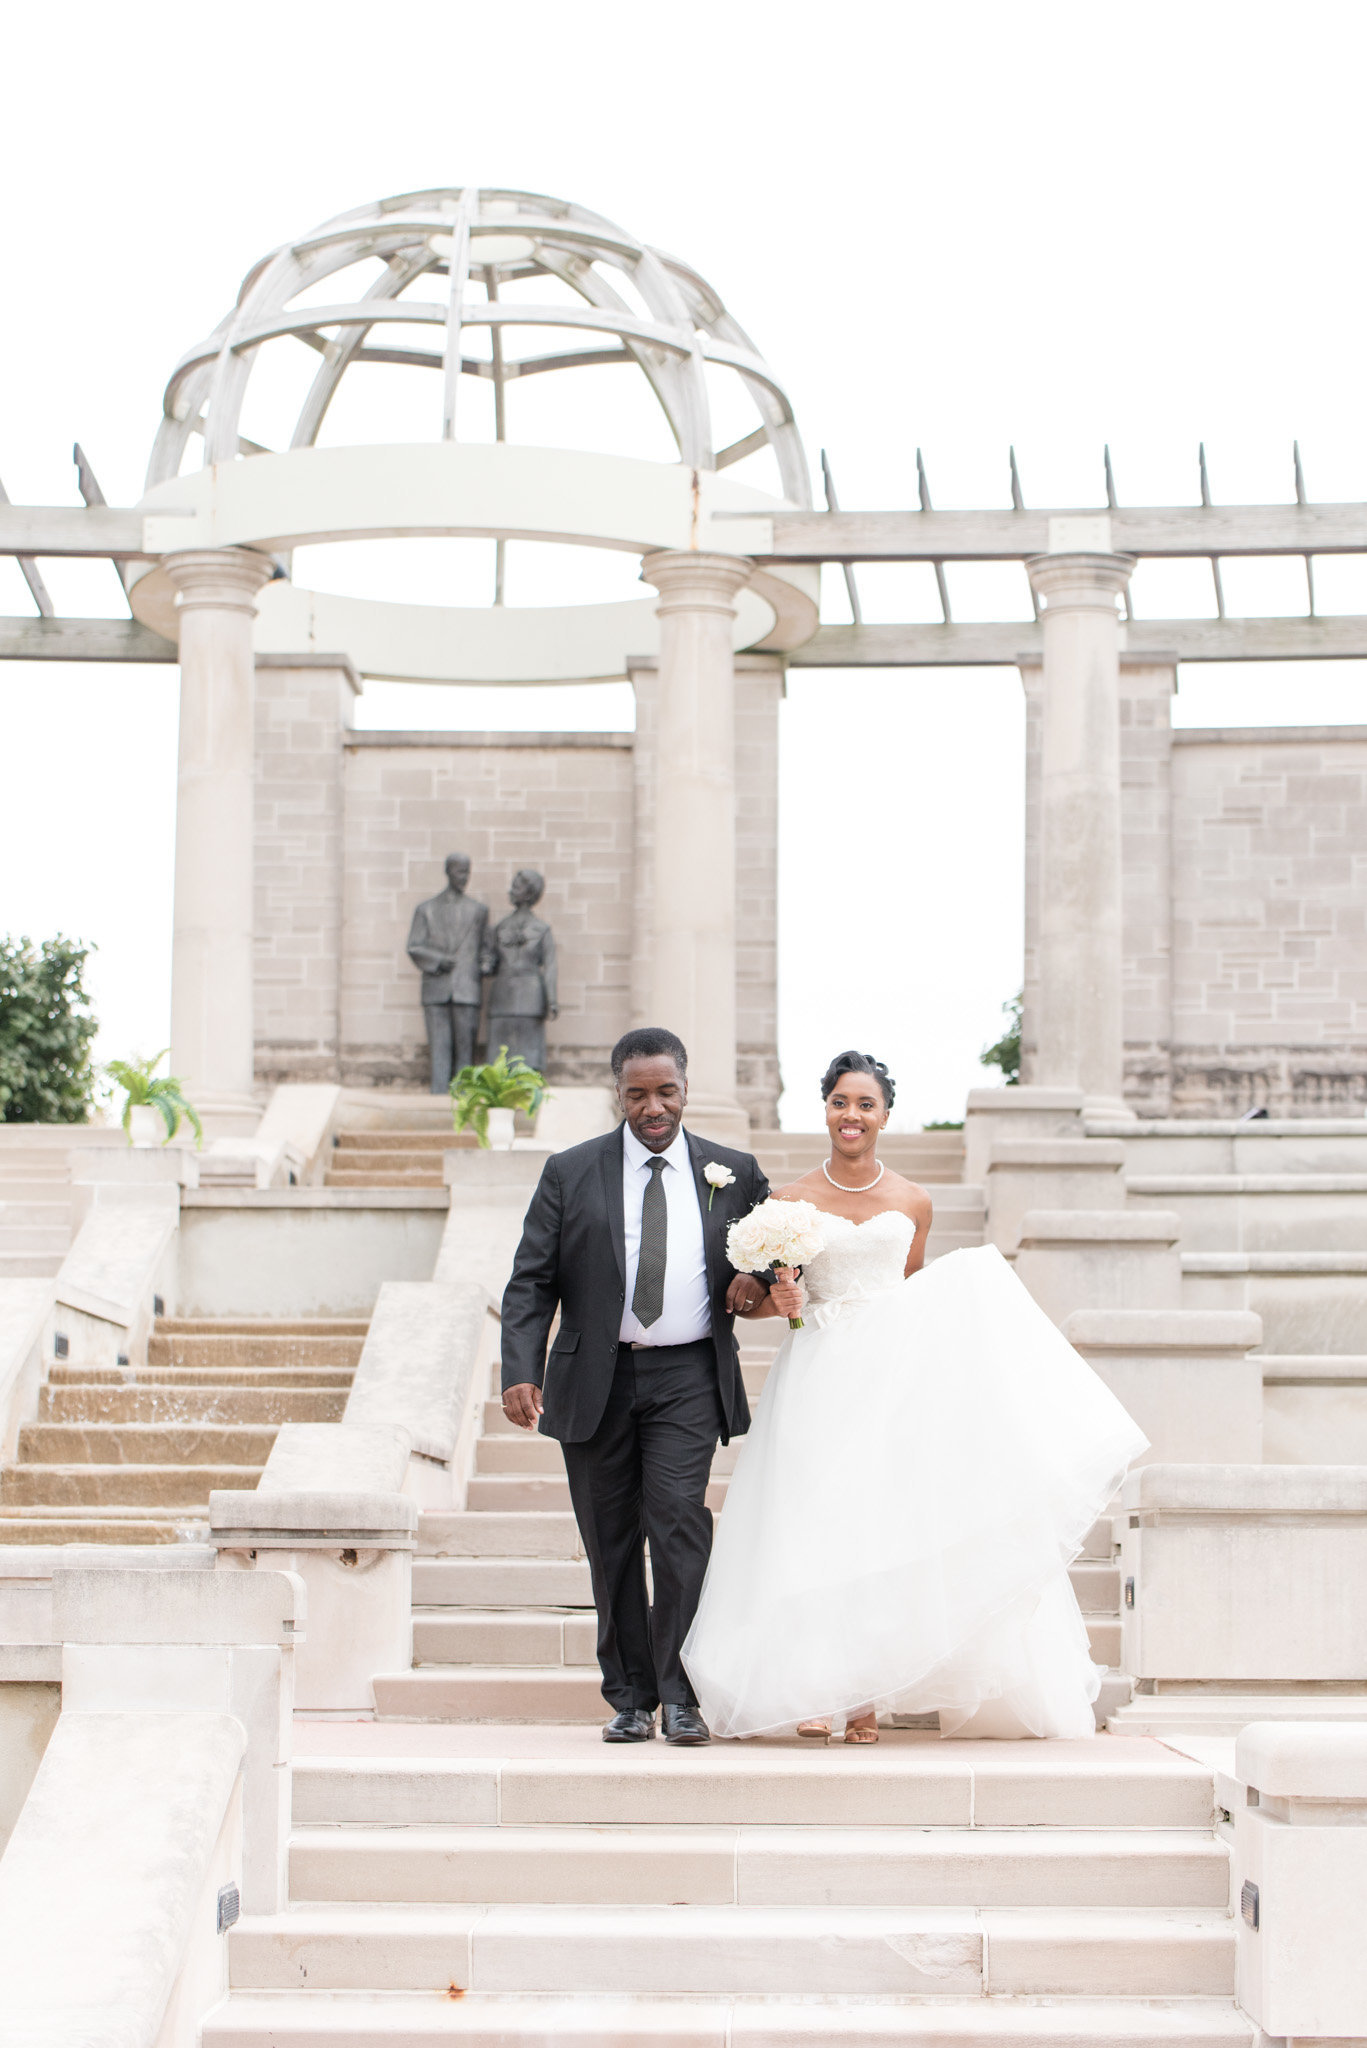 Coxhall-Gardens-Wedding-Indianapolis-Ritz-Charles 0008